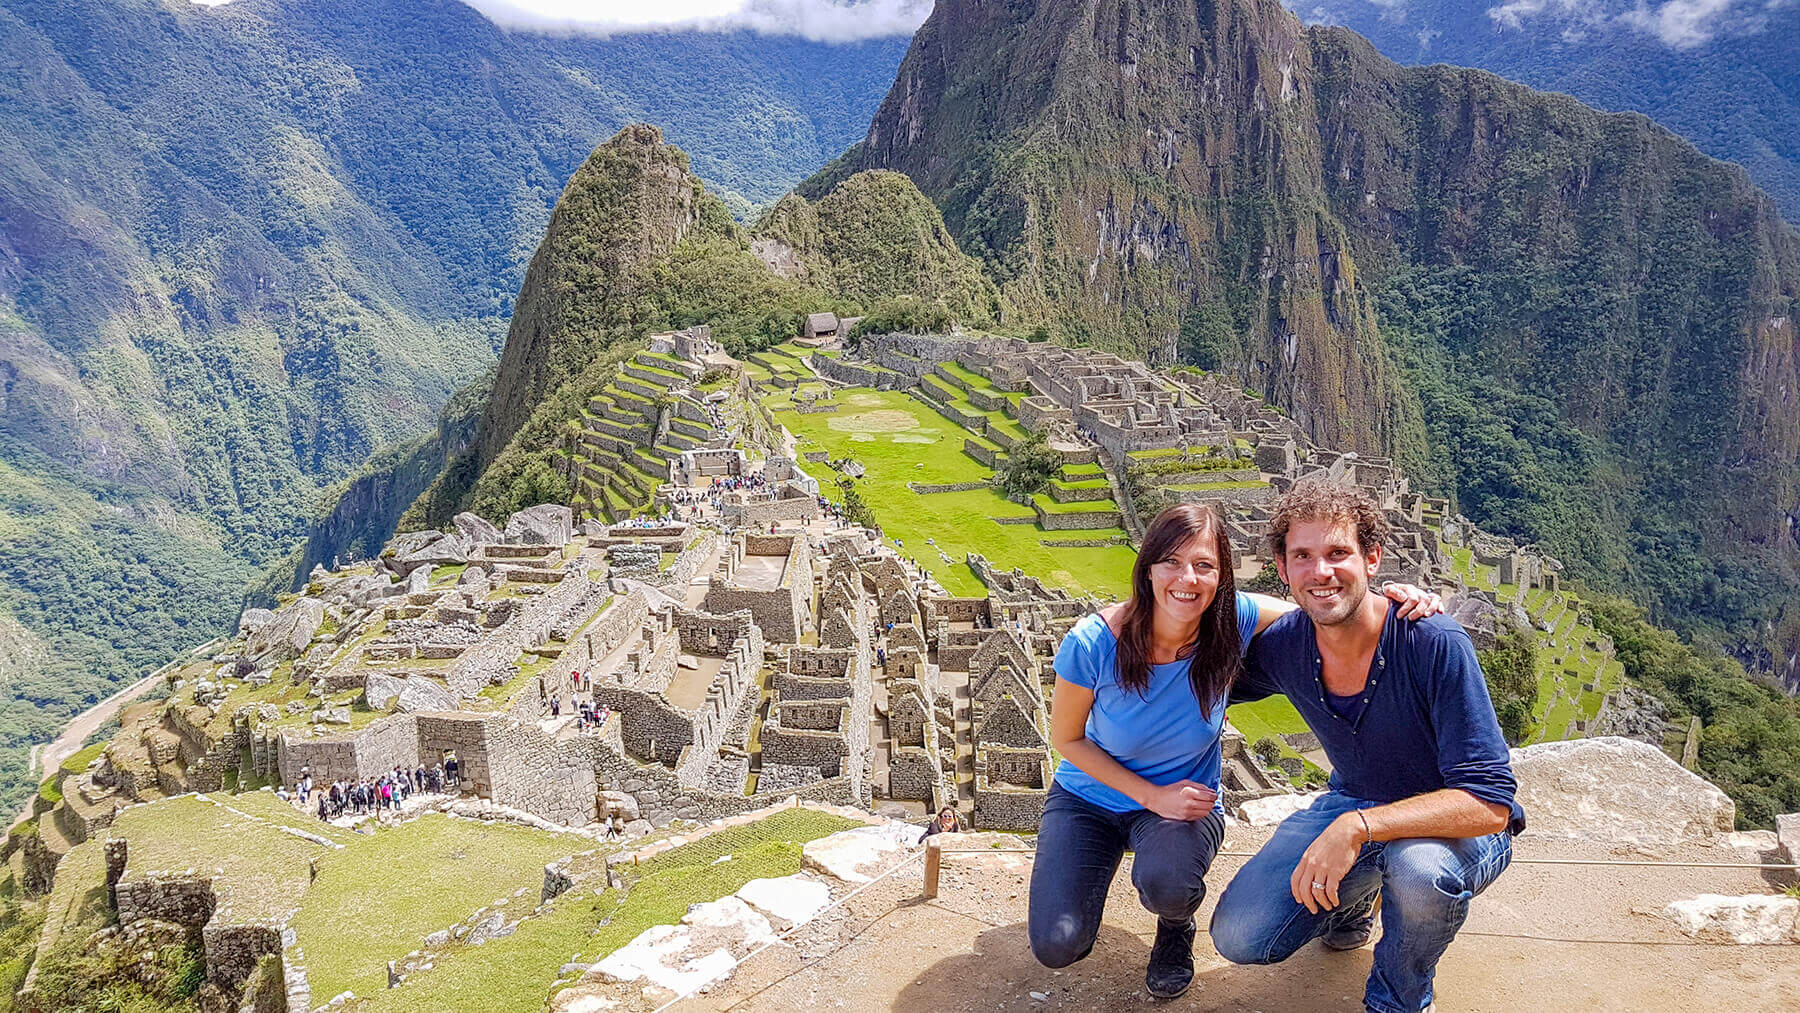 Monique and Ydwer at the most beautiful viewpoint of Machu Picchu in Peru